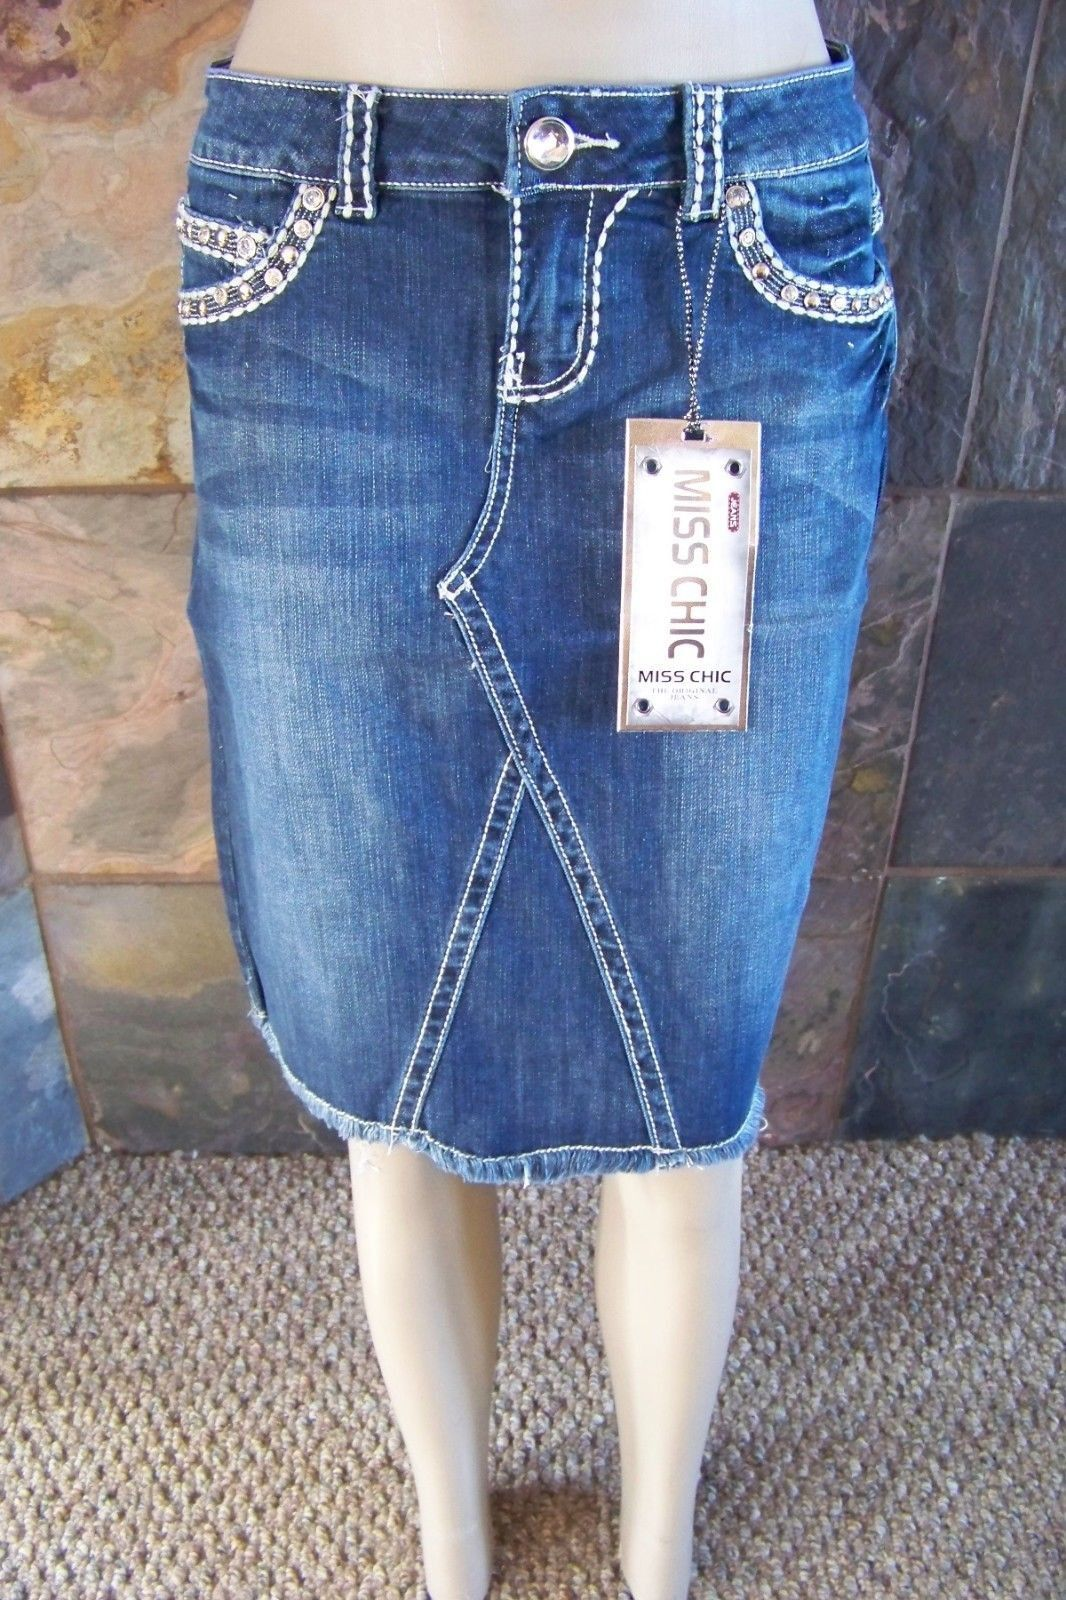 bbb9e7027b879 NWT Miss Chic denim knee length jean skirt BLING embellished Cross size S  (fits like a 0,1,2)